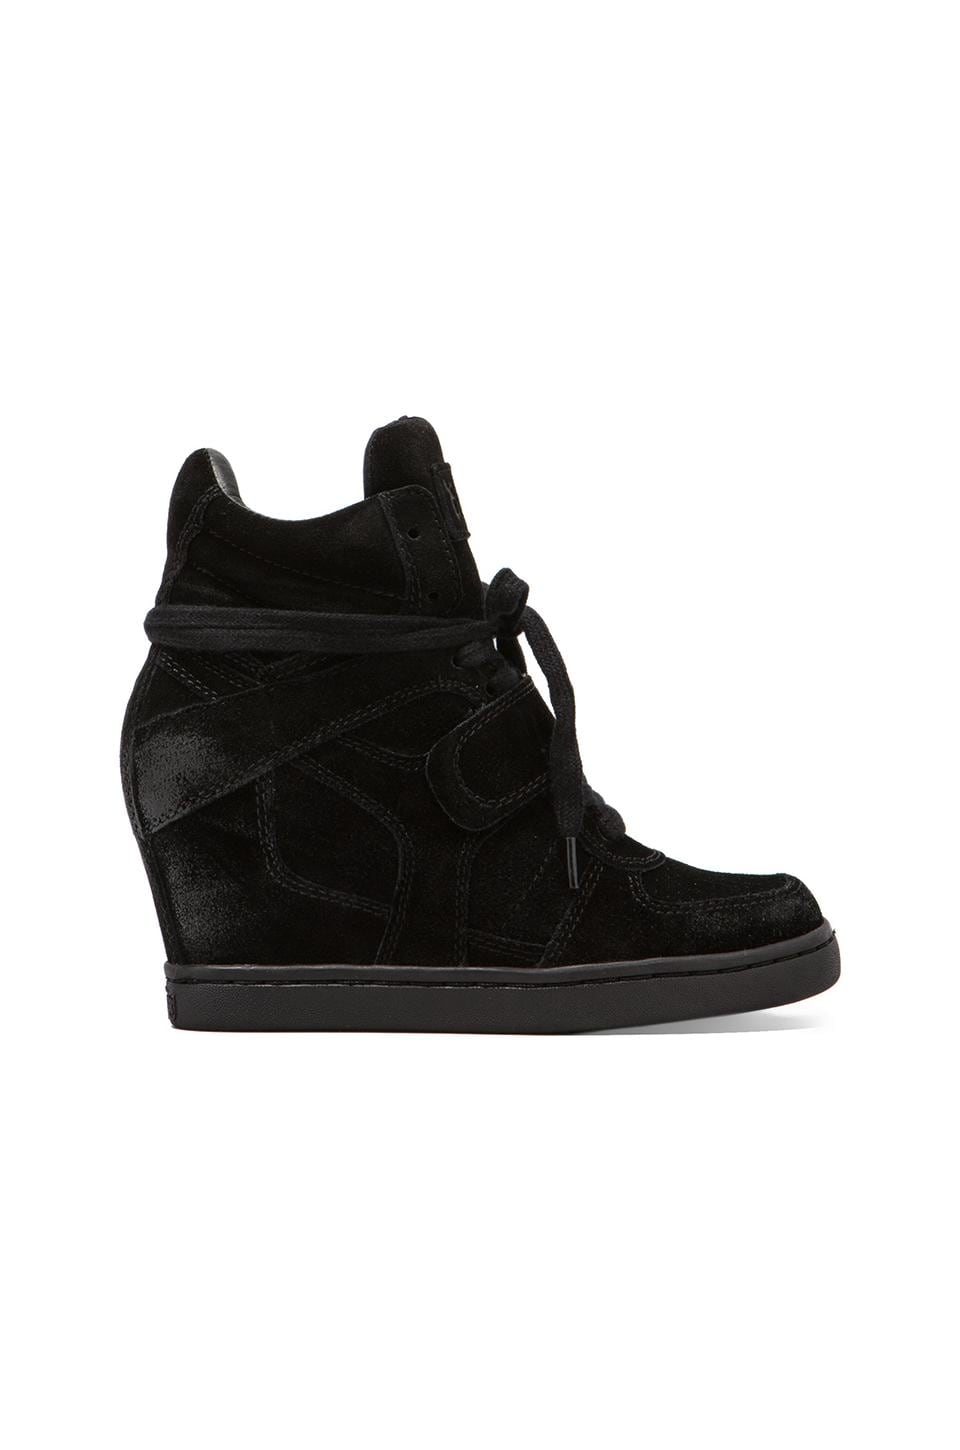 Ash Cool Wedge Sneaker in Black